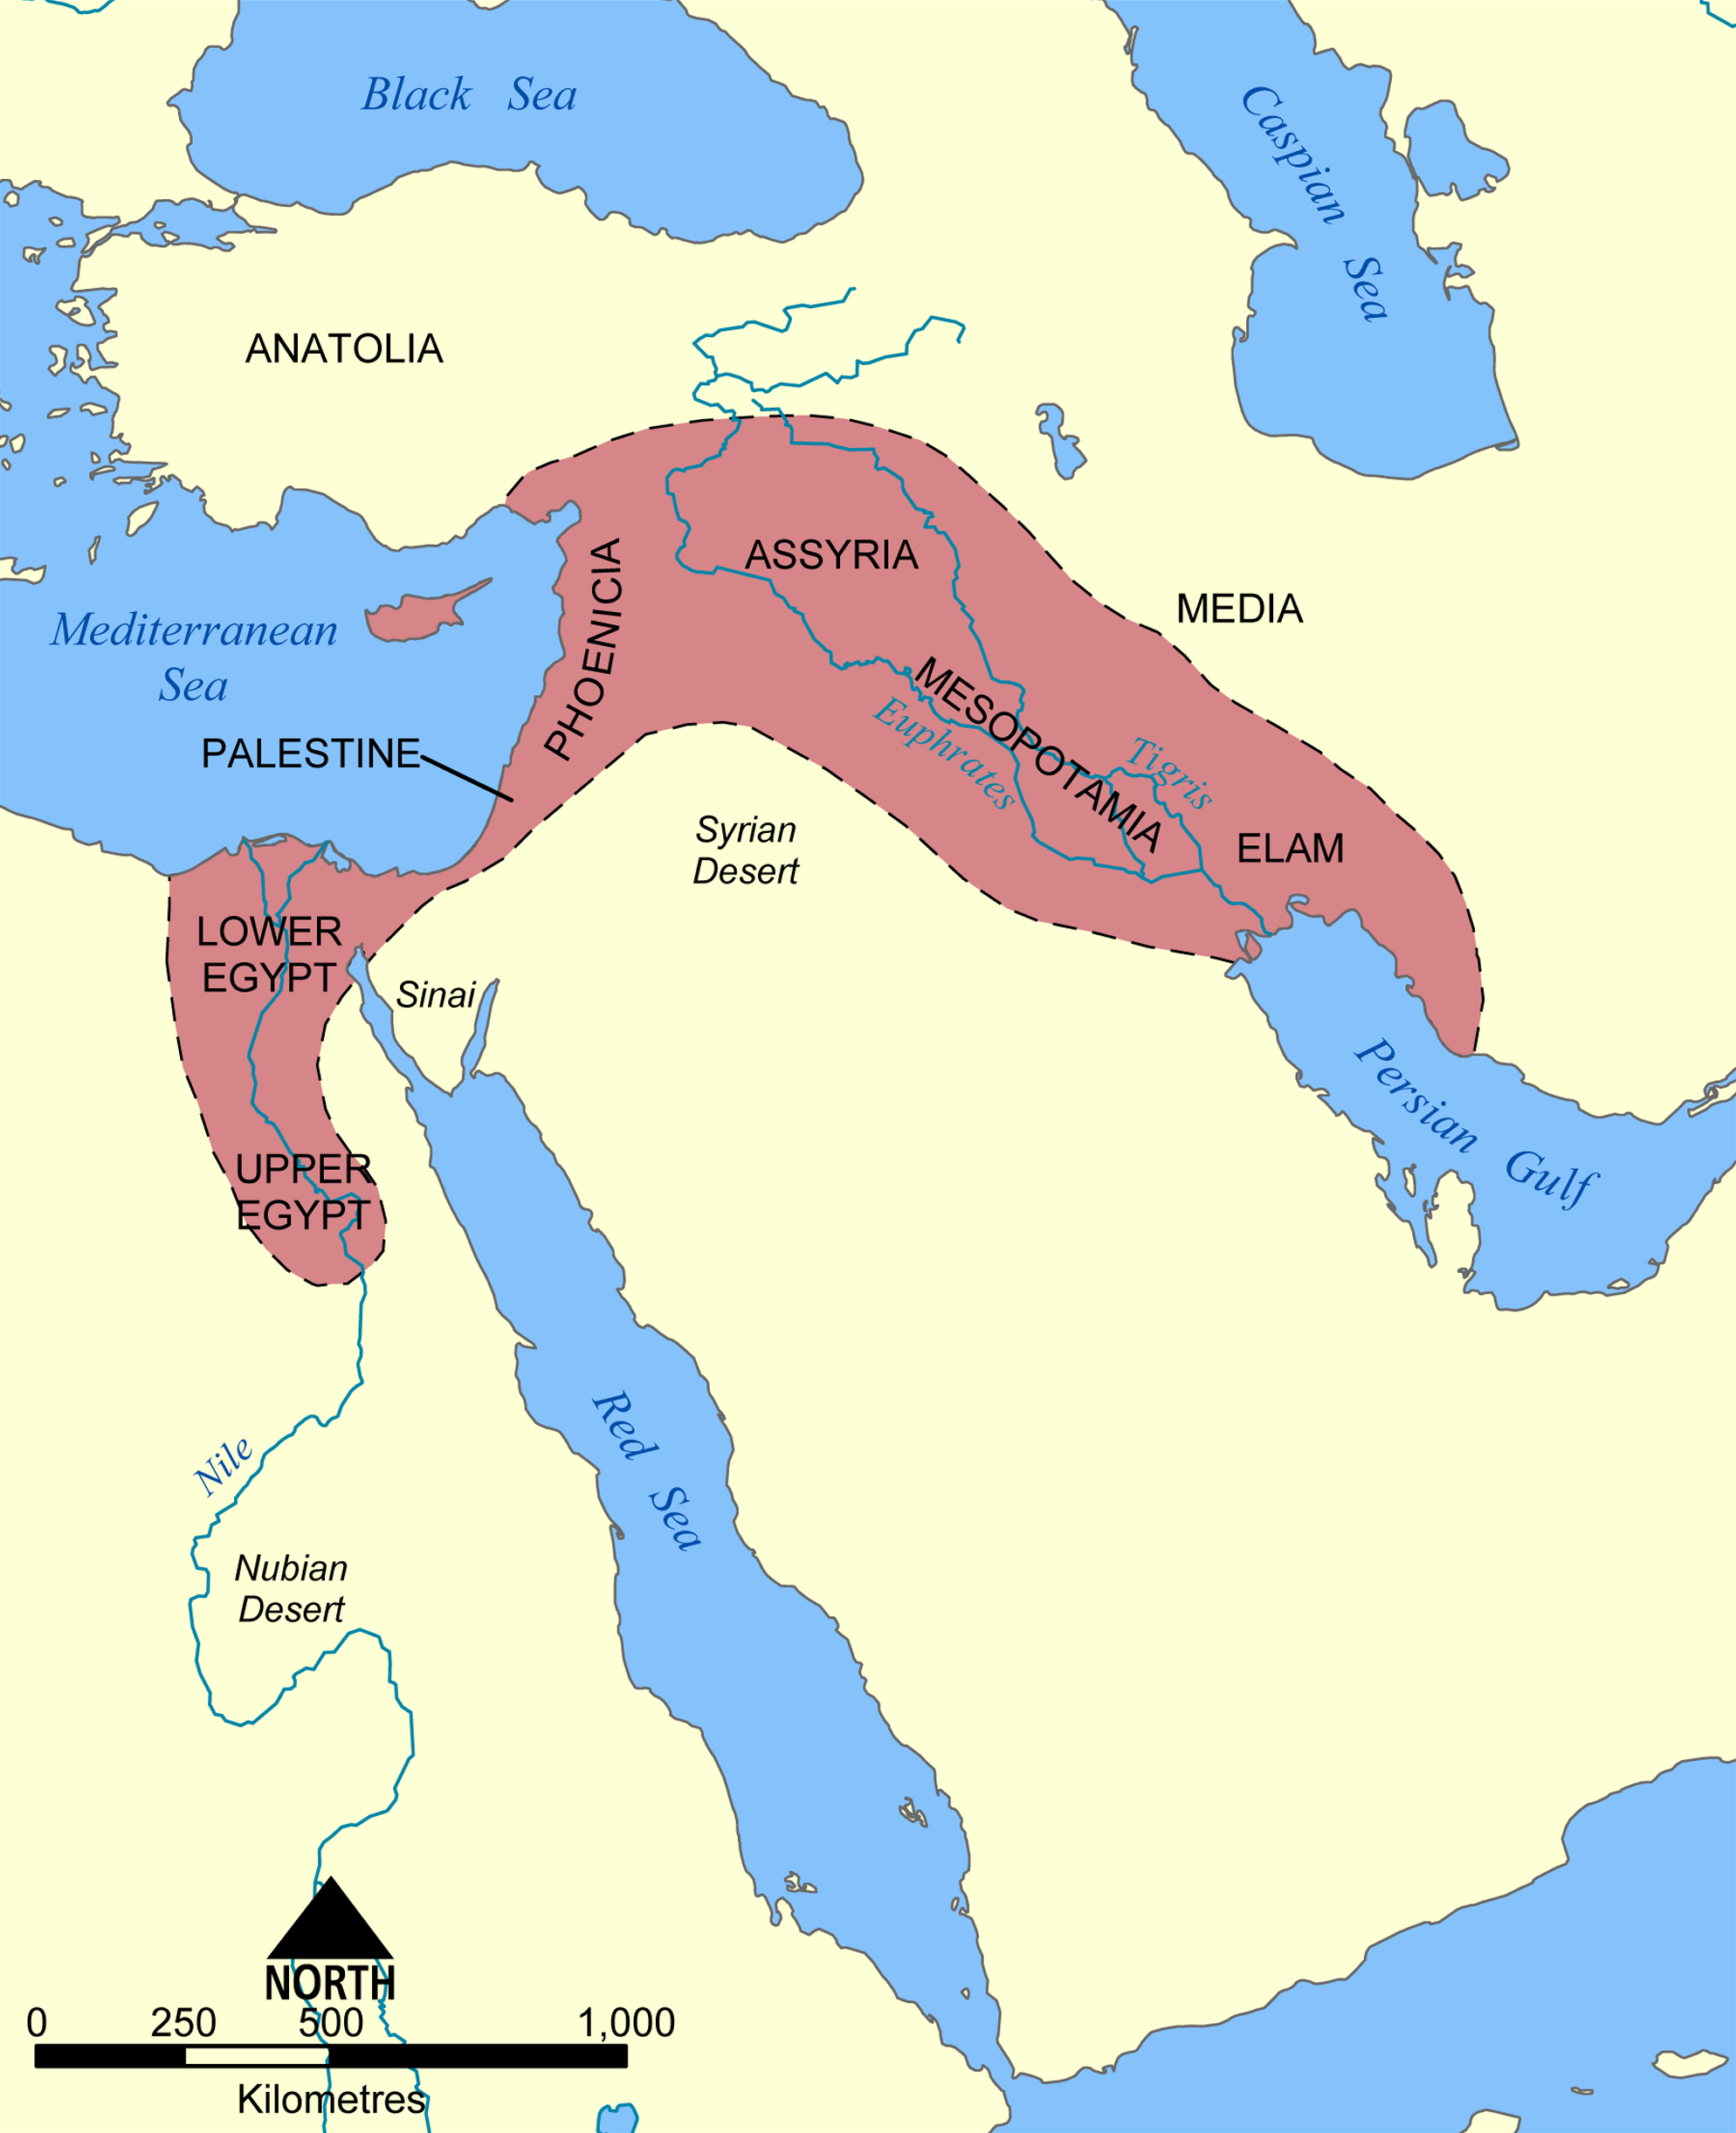 http://upload.wikimedia.org/wikipedia/commons/2/23/Fertile_Crescent_map.png